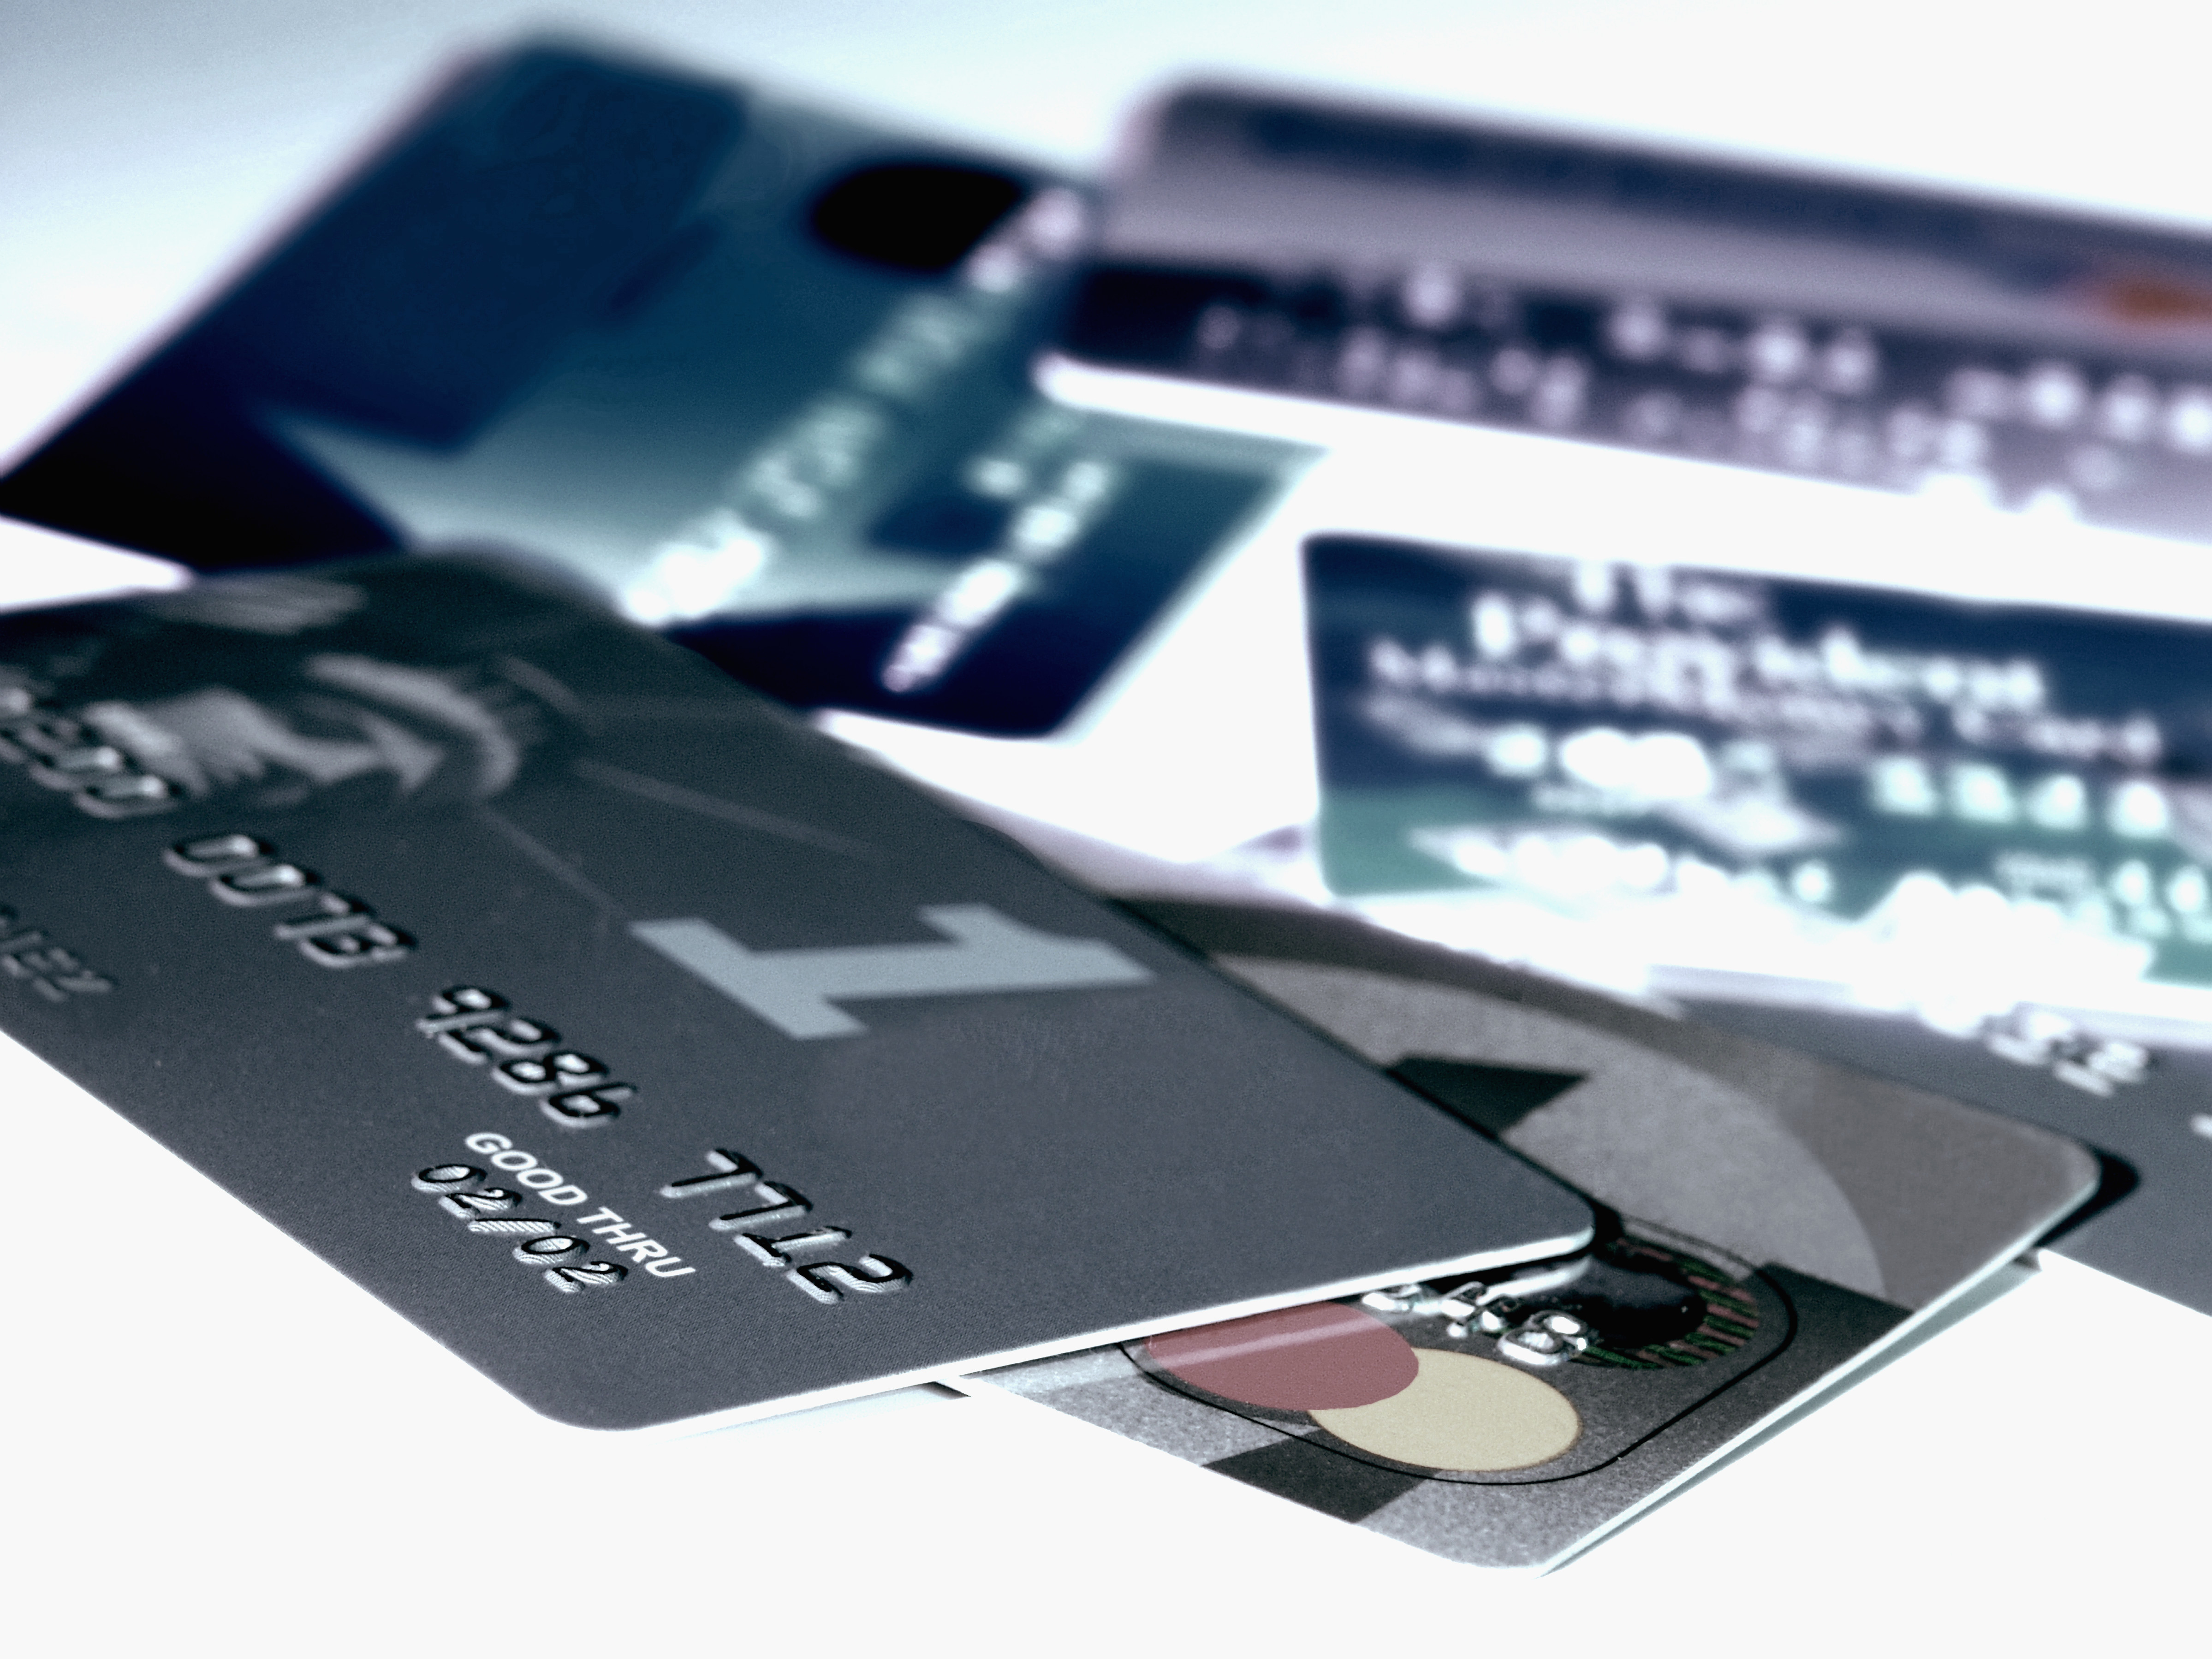 Array of credit cards